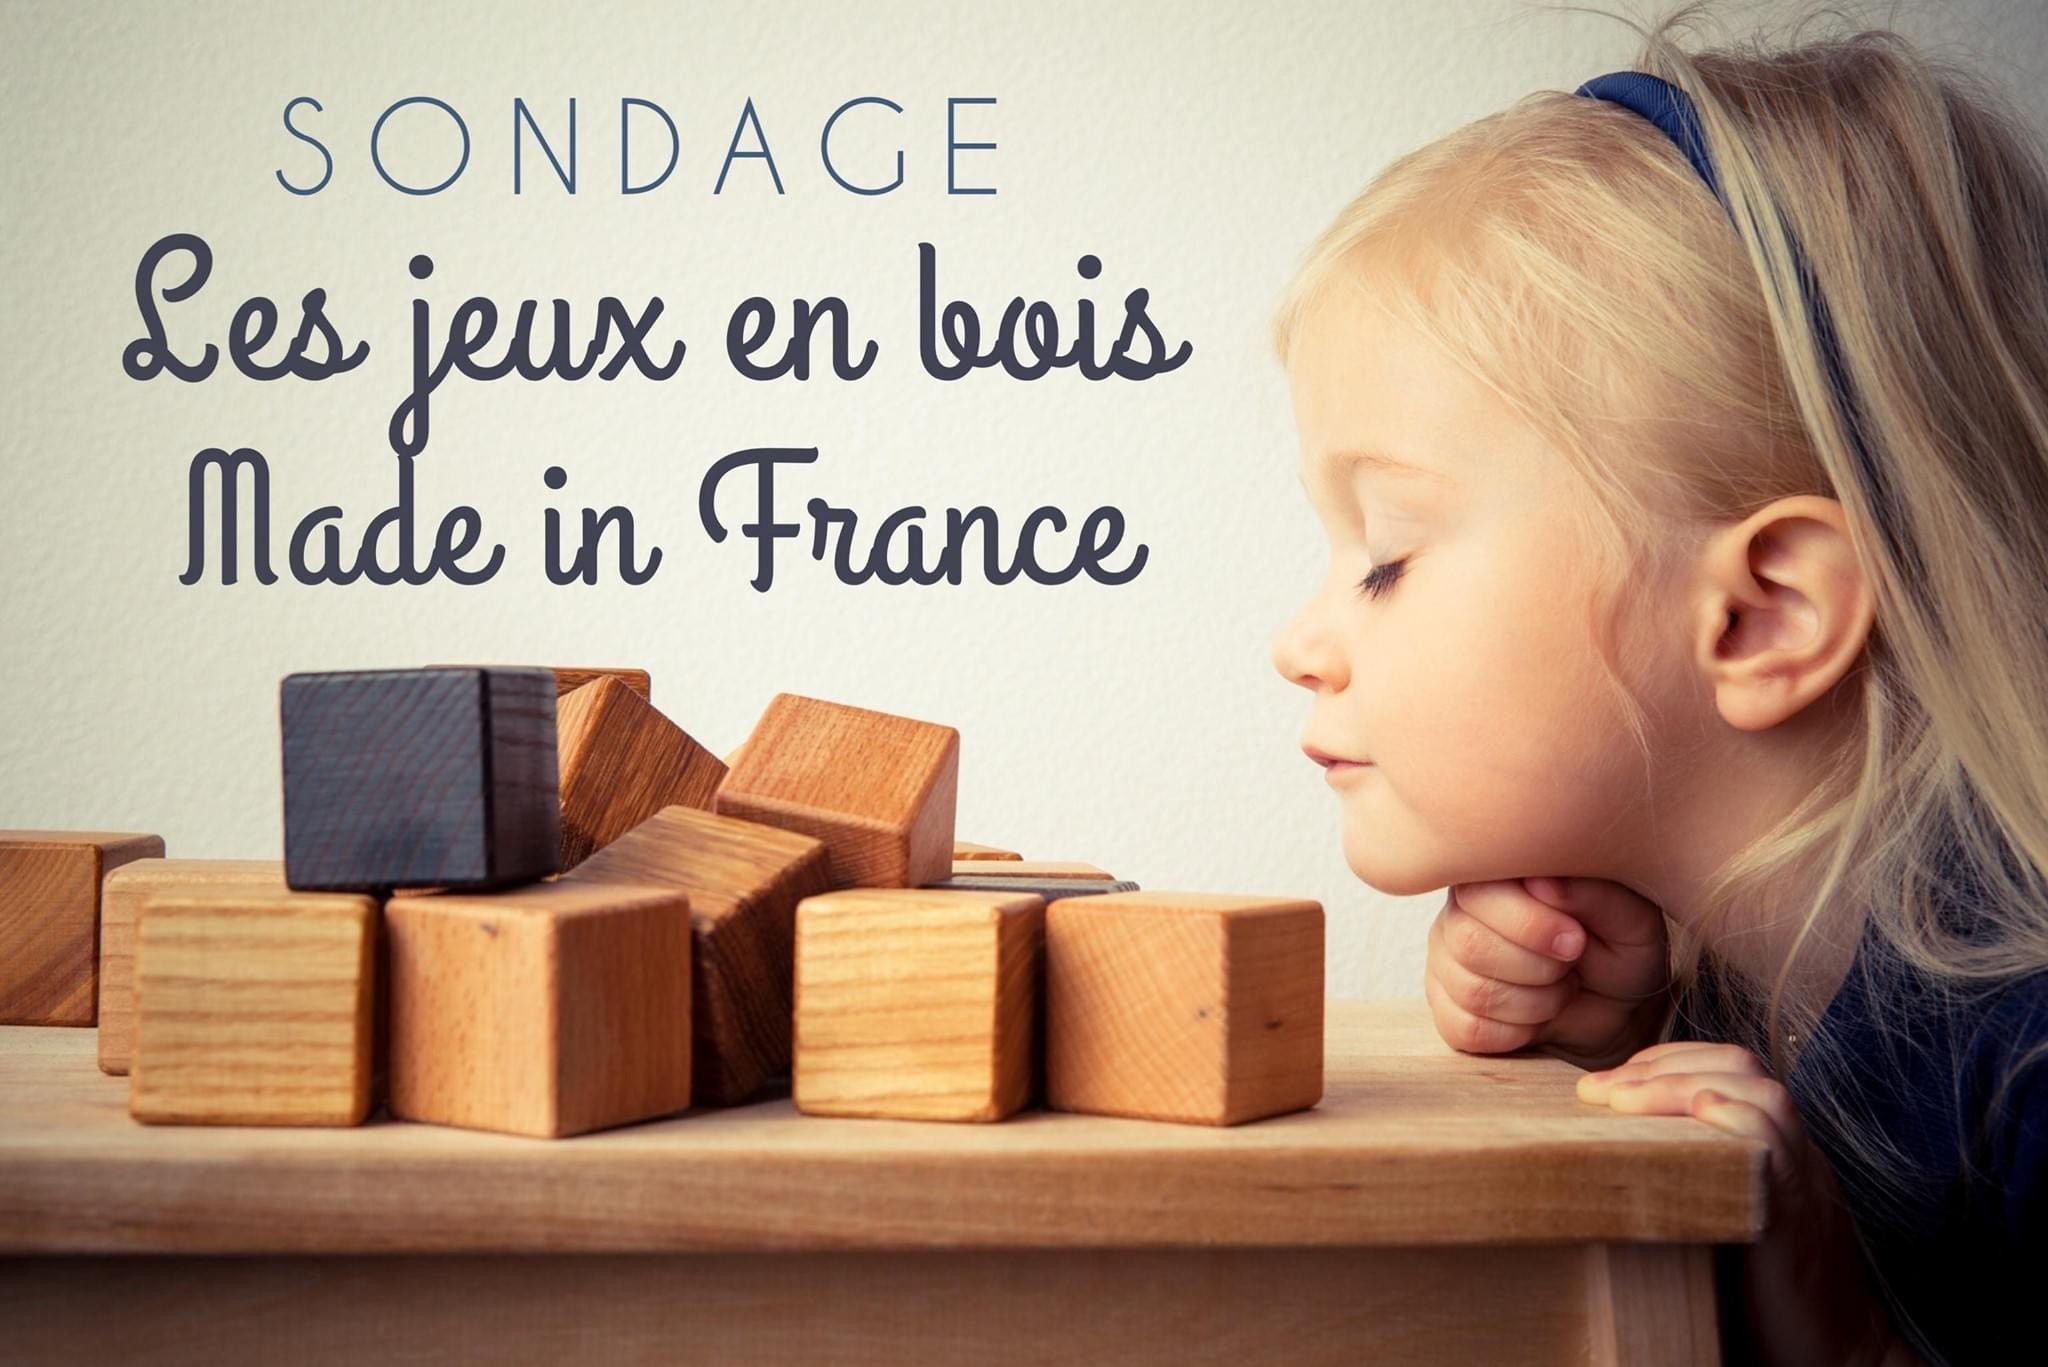 Sondage made in France